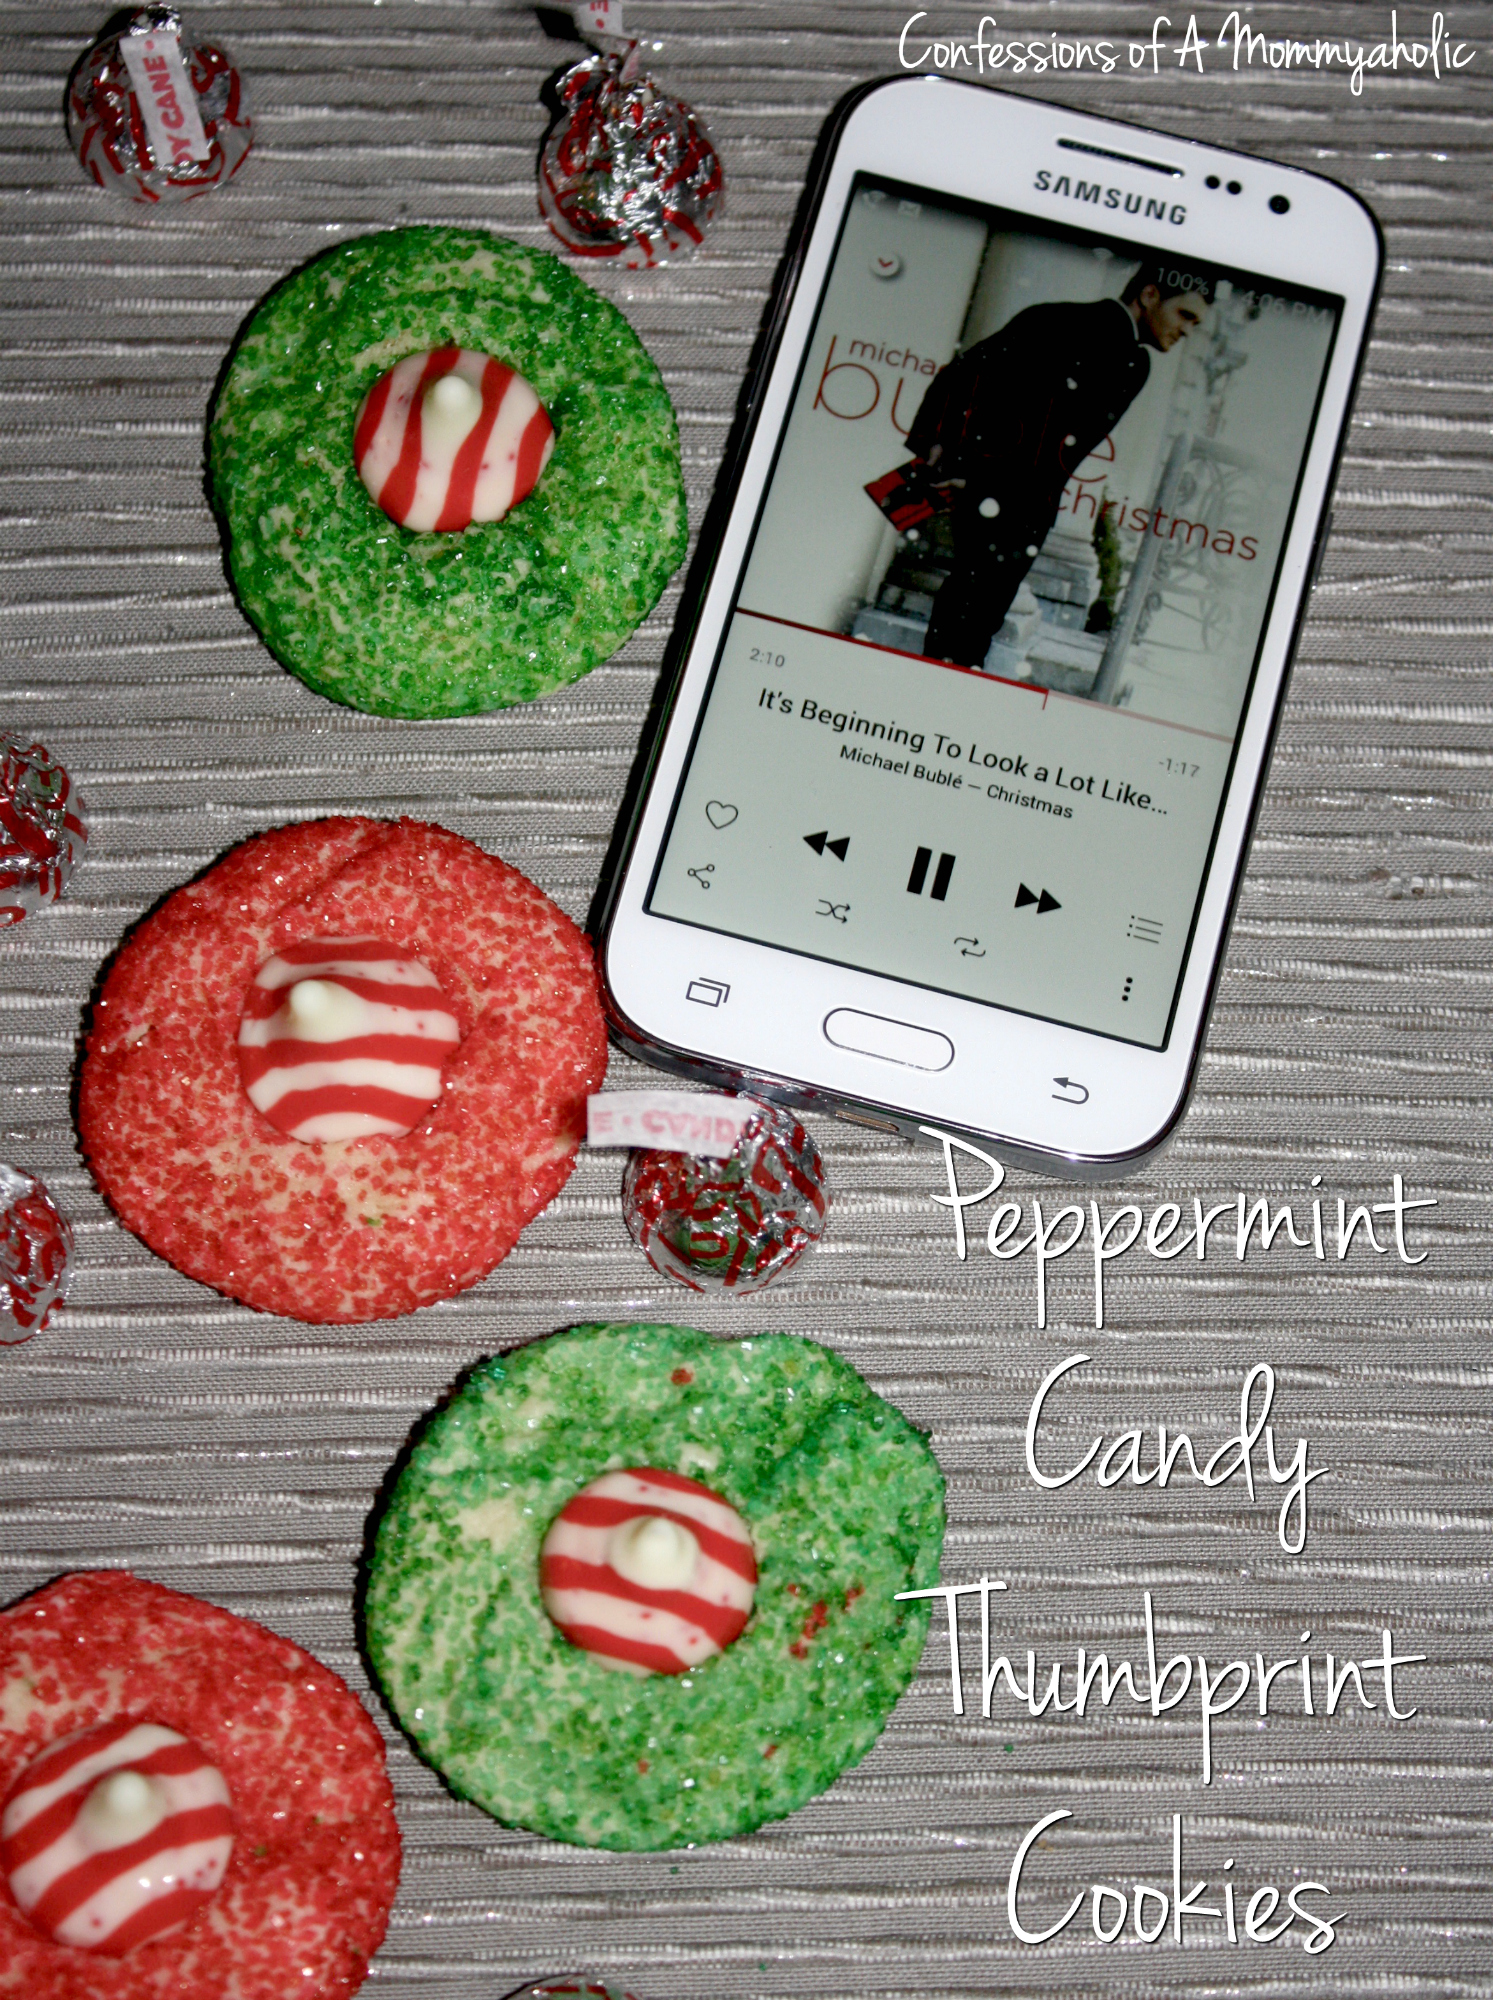 Peppermint Candy Thumbprint Cookies